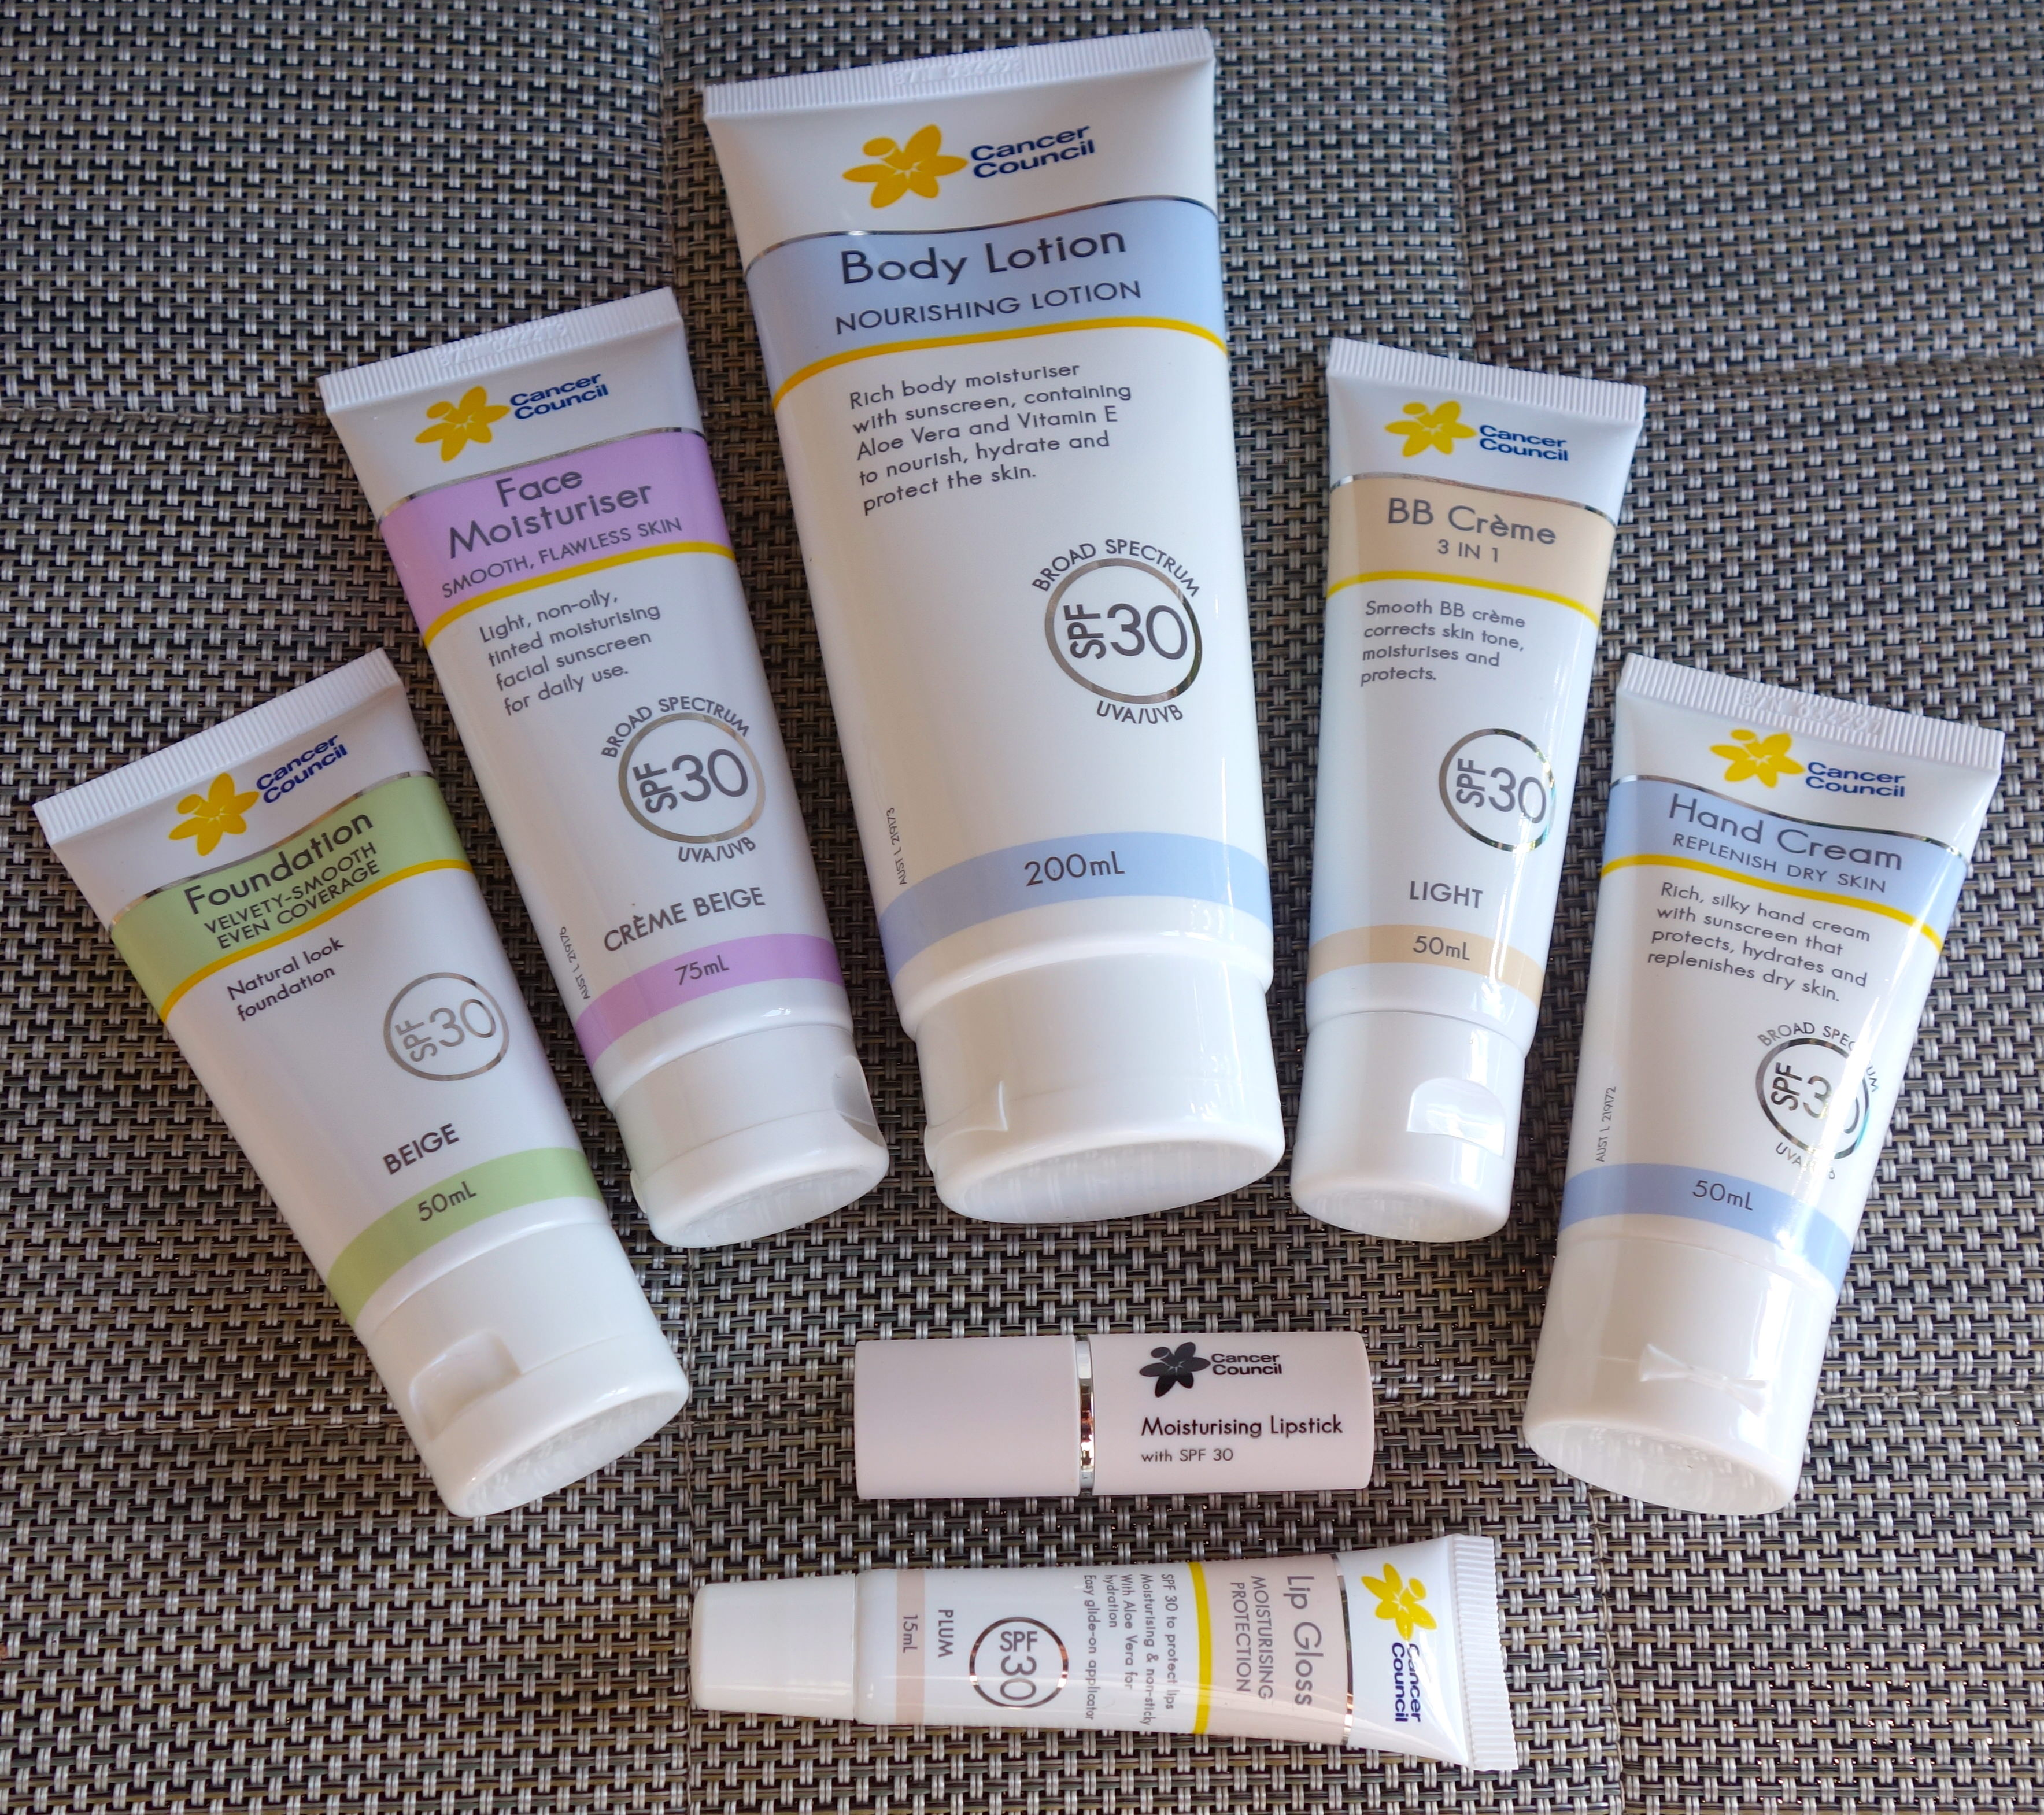 cancer council professional sunscreen for scars